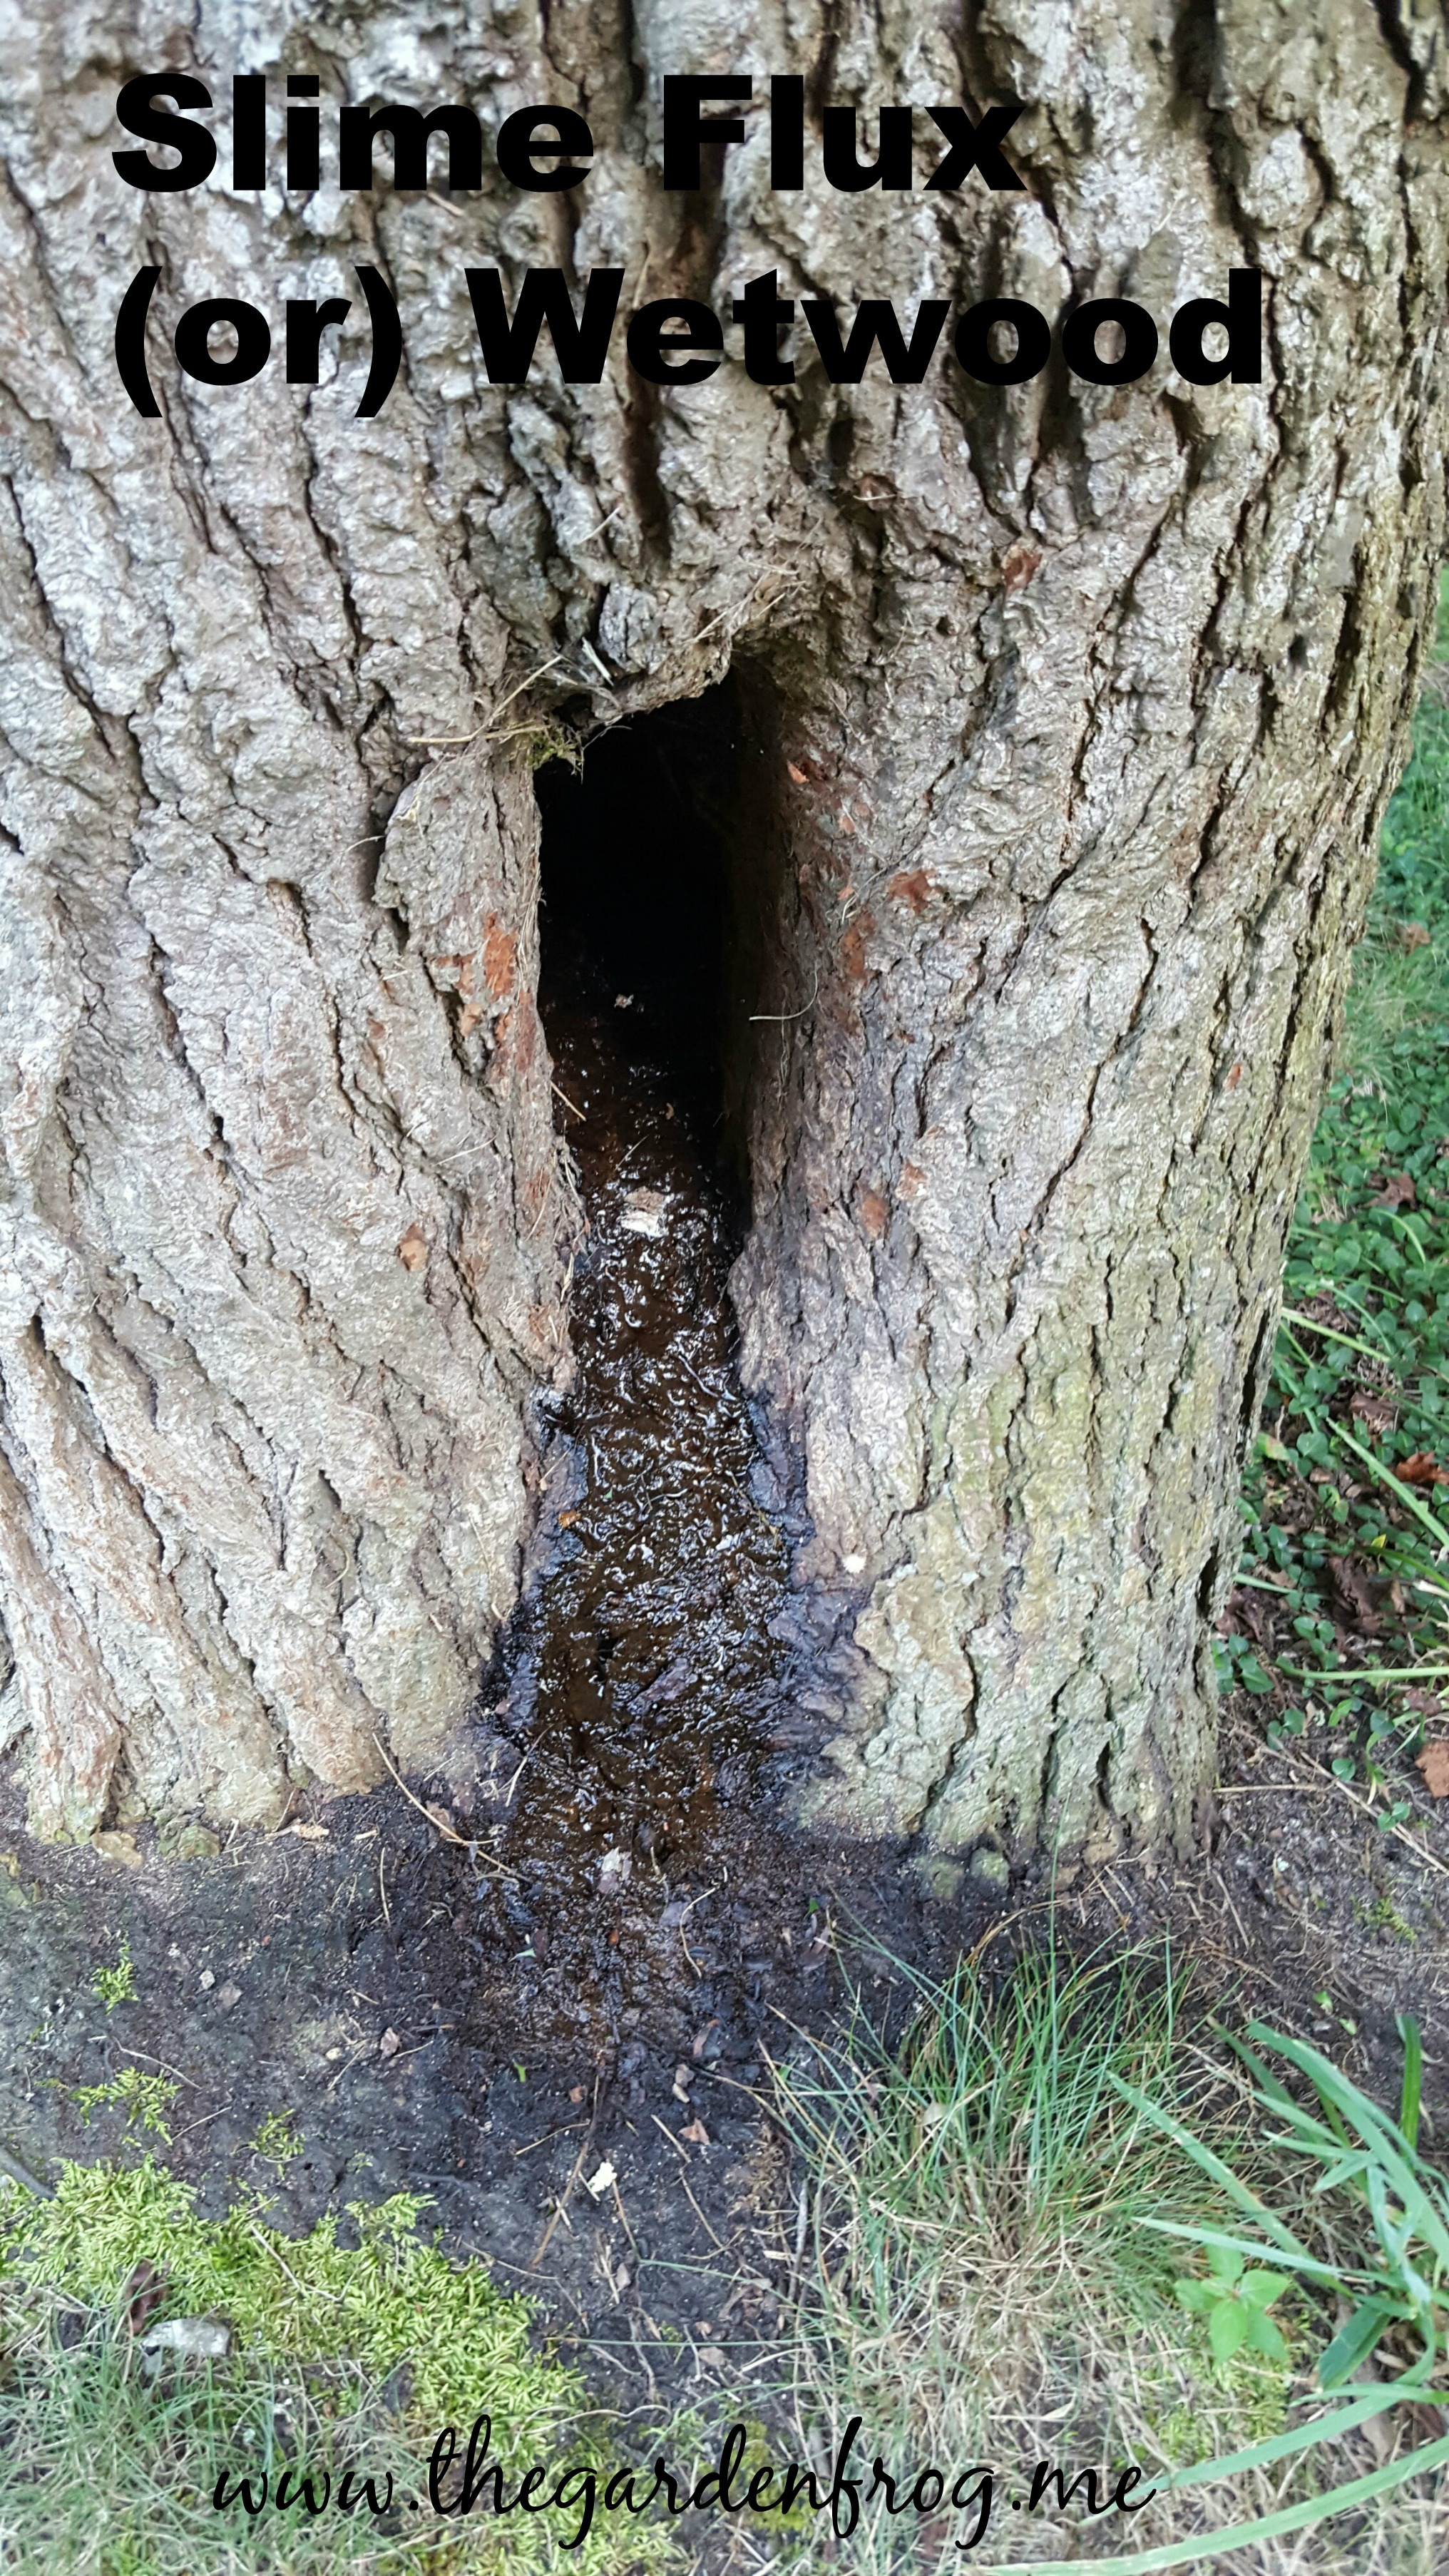 What is this smelly tar like substance oozing from my tree? Slime Flux or Wetwood